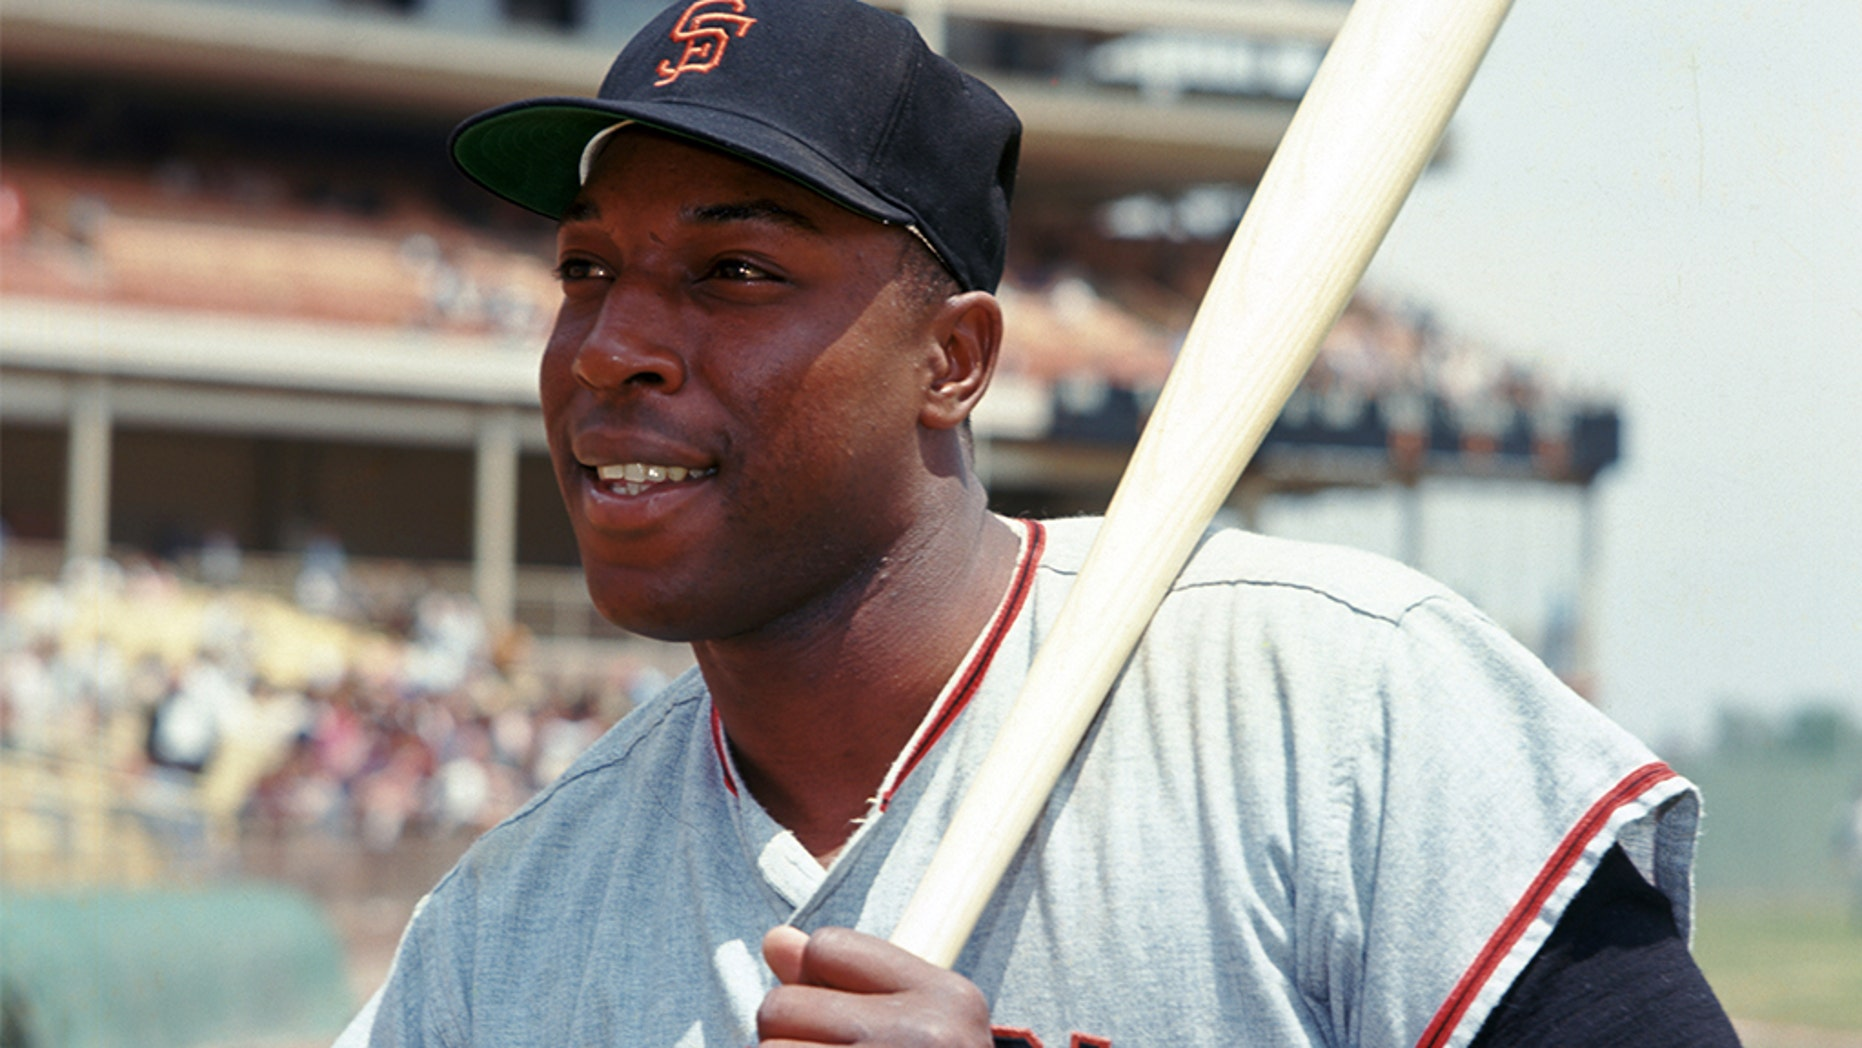 San Francisco Giants Willie McCovey (4) portrait from his 1964 season with the San Francisco Giants. Willie McCovey played for 22 years with 3 different teams, was a 6-time All-Star, 1969 National League MVP and was inducted to the Baseball Hall of Fame in 1986. (David Durochik via AP)